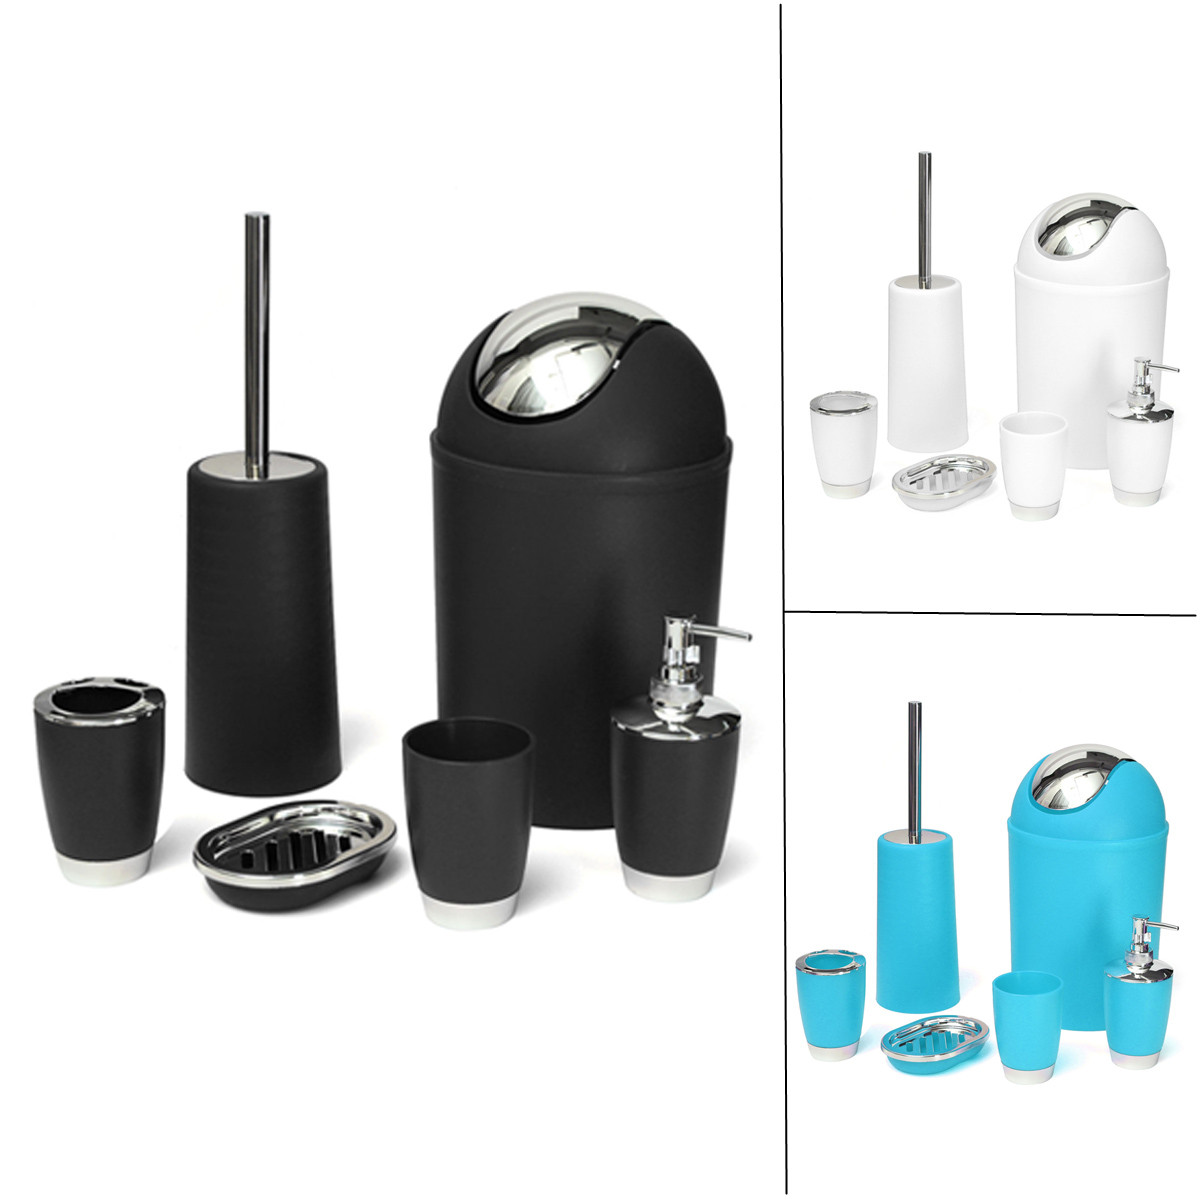 6Pcs Set Home Bathroom Organizer Accessory Bin Soap Dish Dispenser Tumbler Toothbrush Holder Stand Christmas Birthday Gift